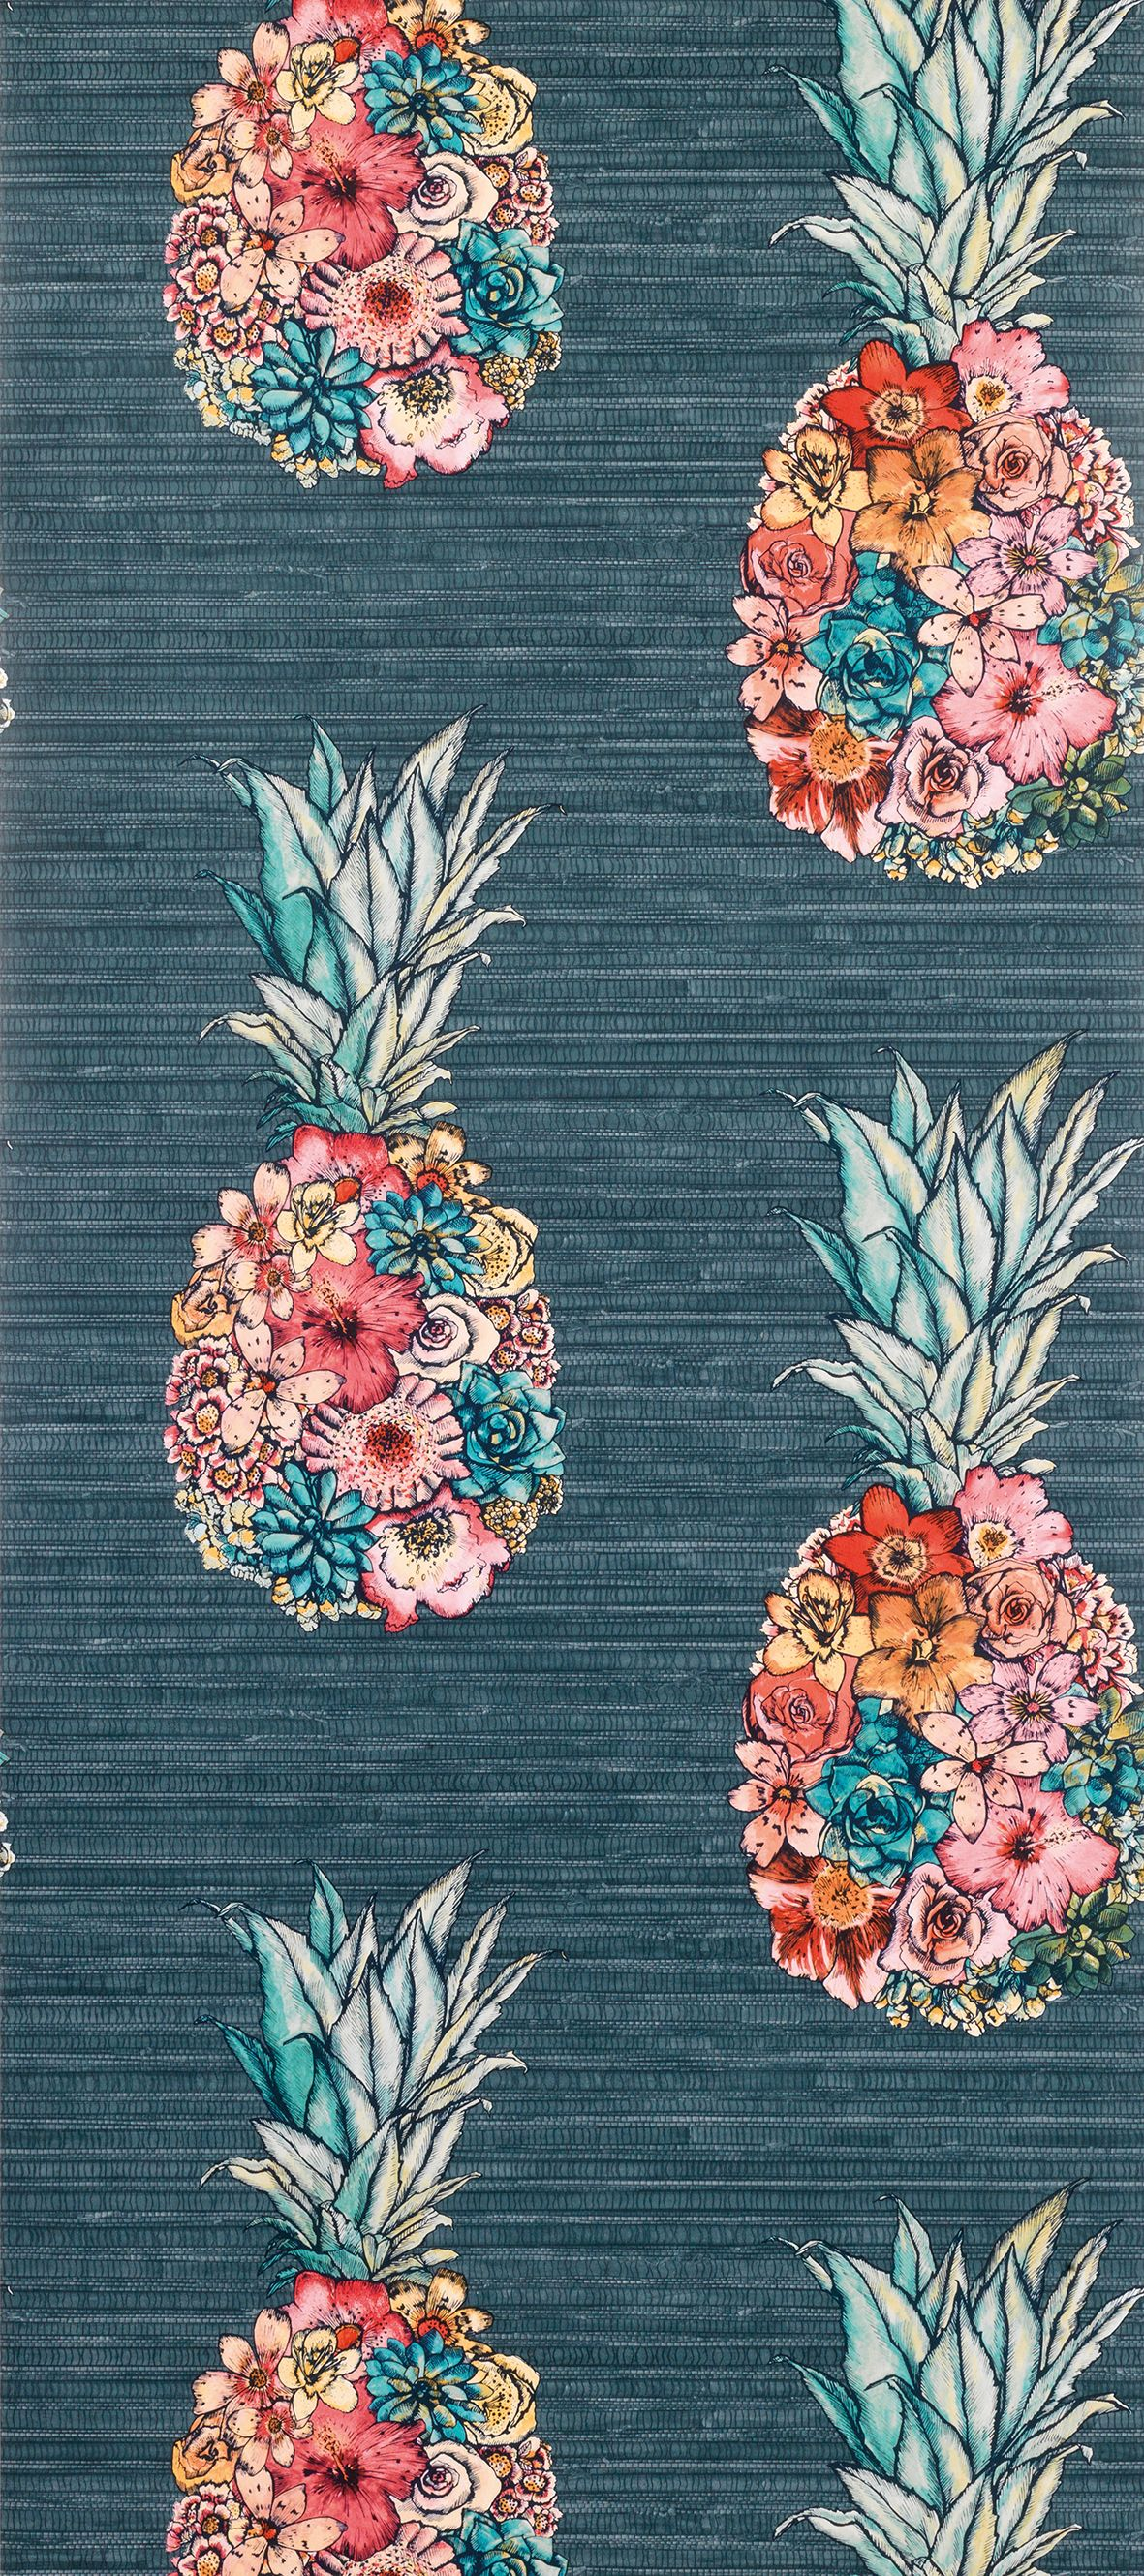 Sample Ananas Wallpaper With Colourful Petals from the Deya Collection by Matthew Williamson